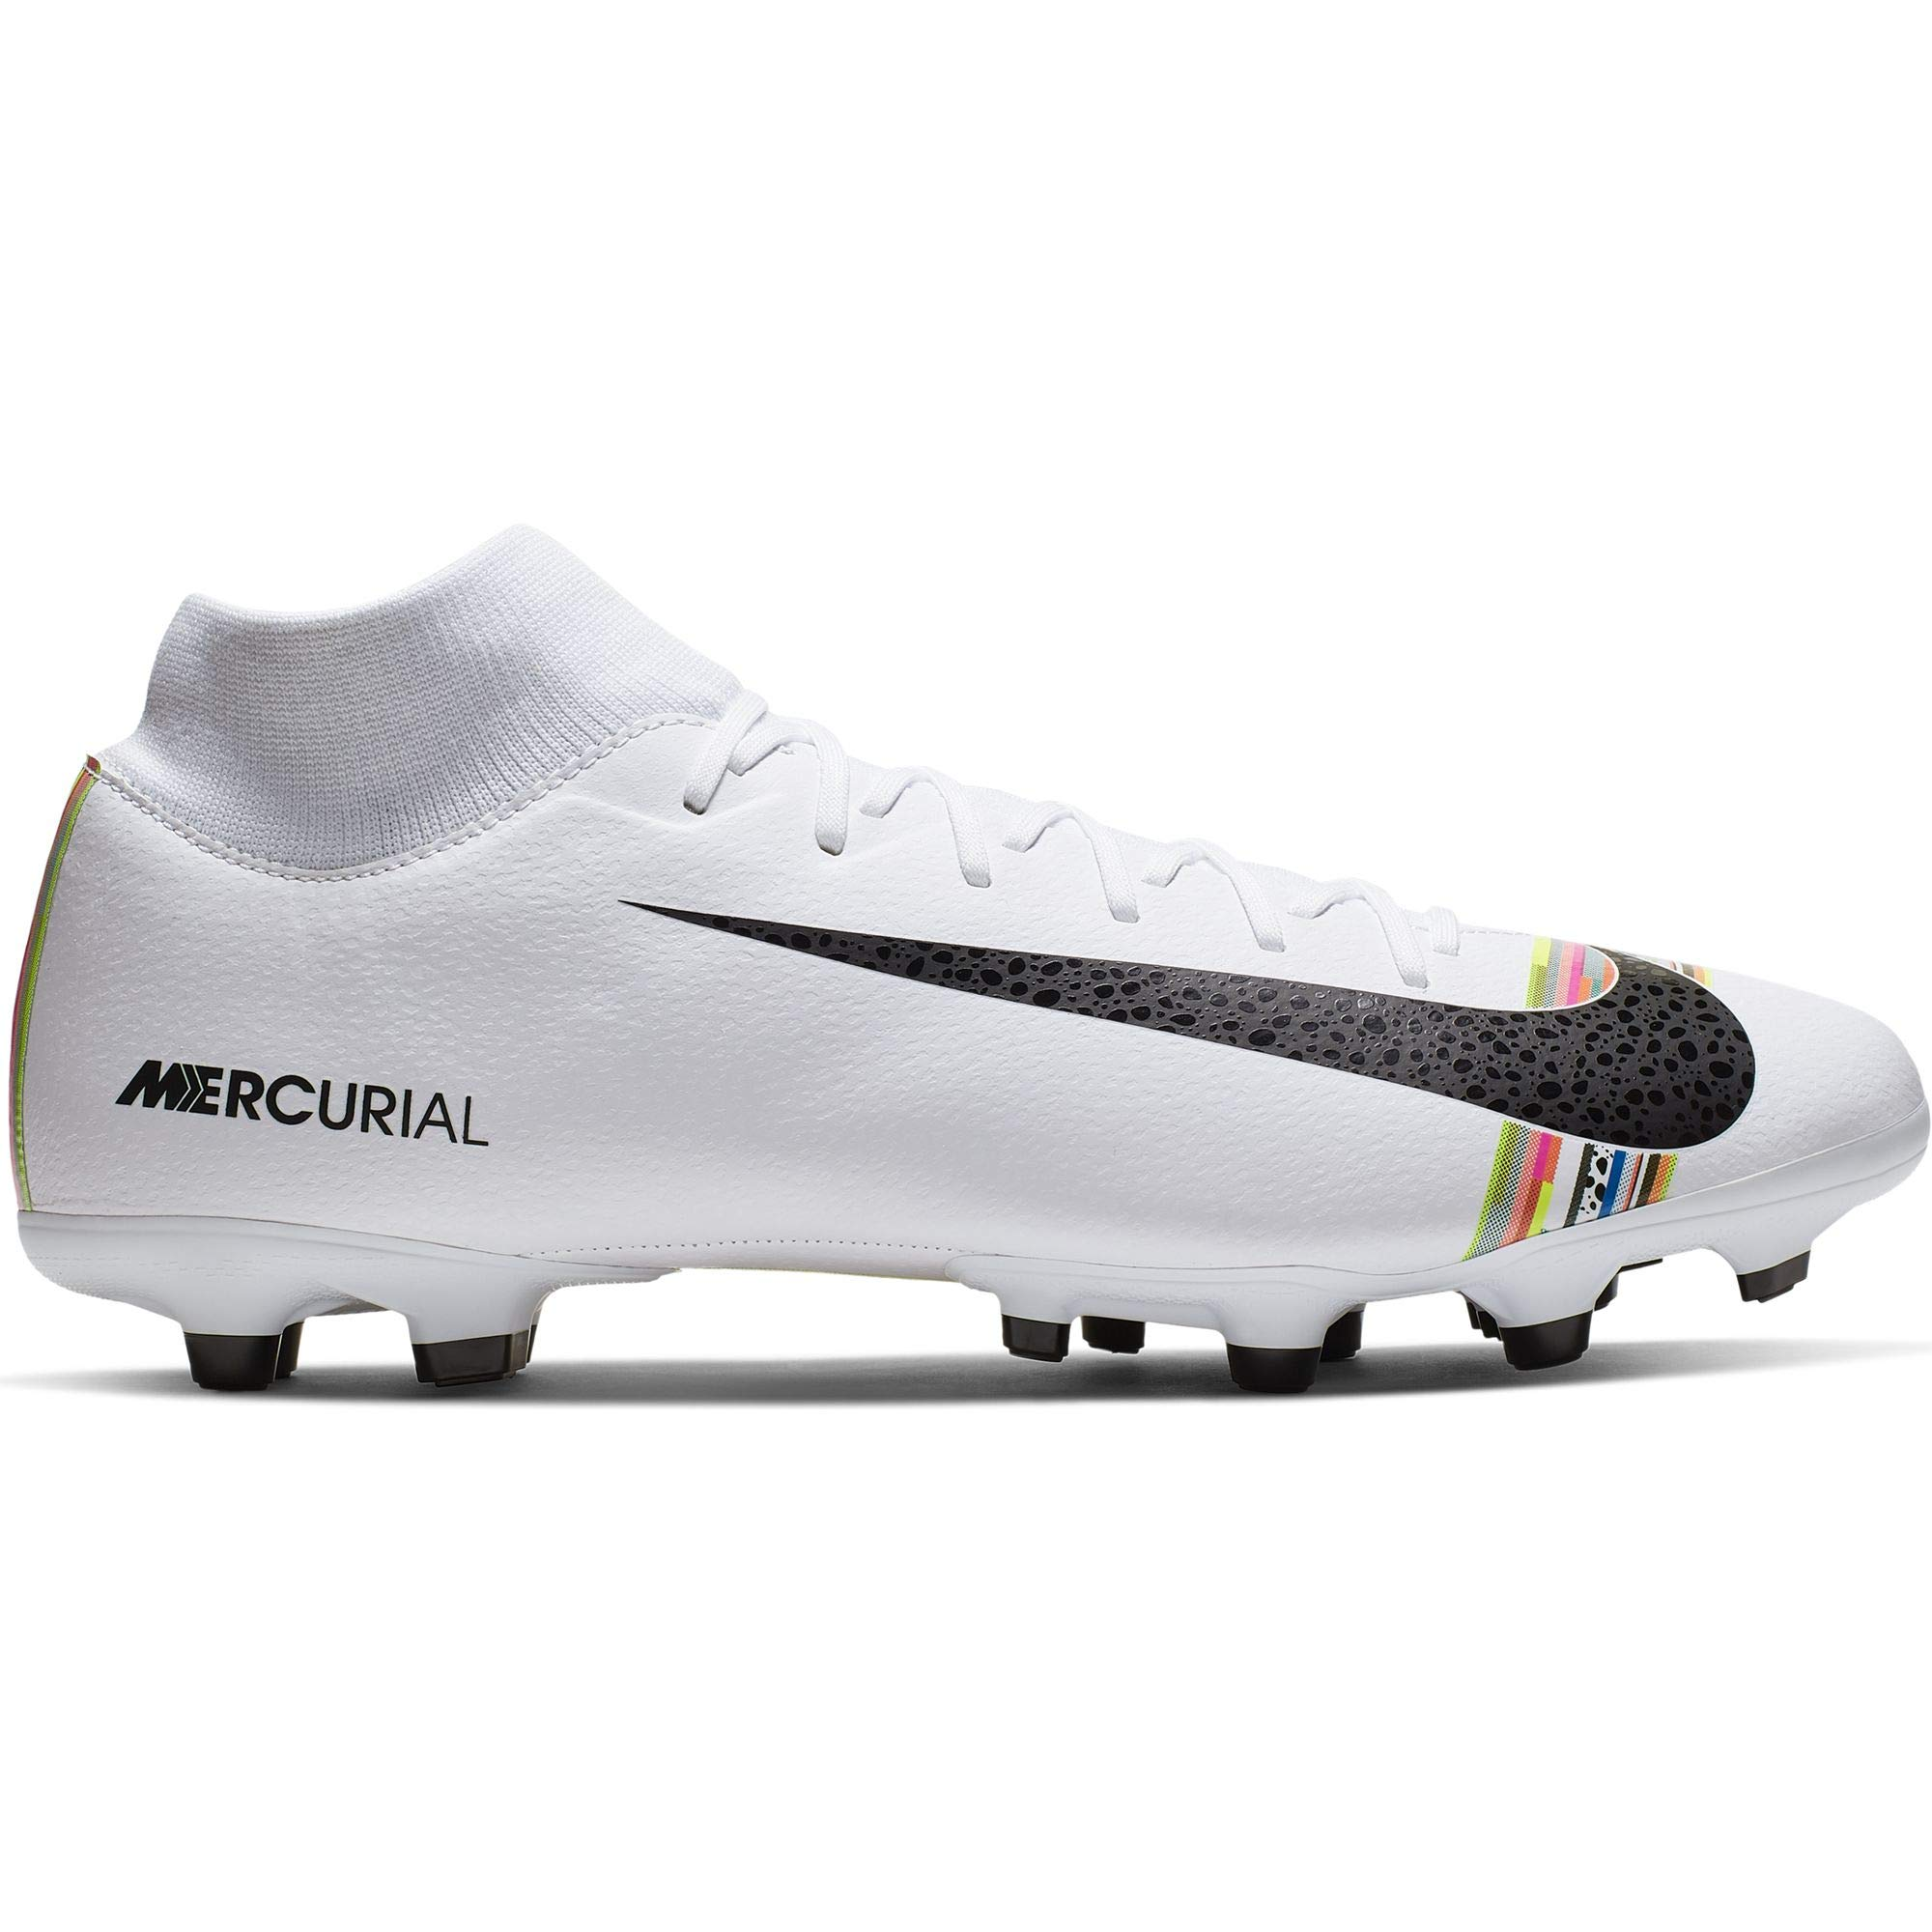 Nike Men's Mercurial Superfly 6 CR7 Soccer Cleat White/Black/Pure Platinum Size 8.5 M US